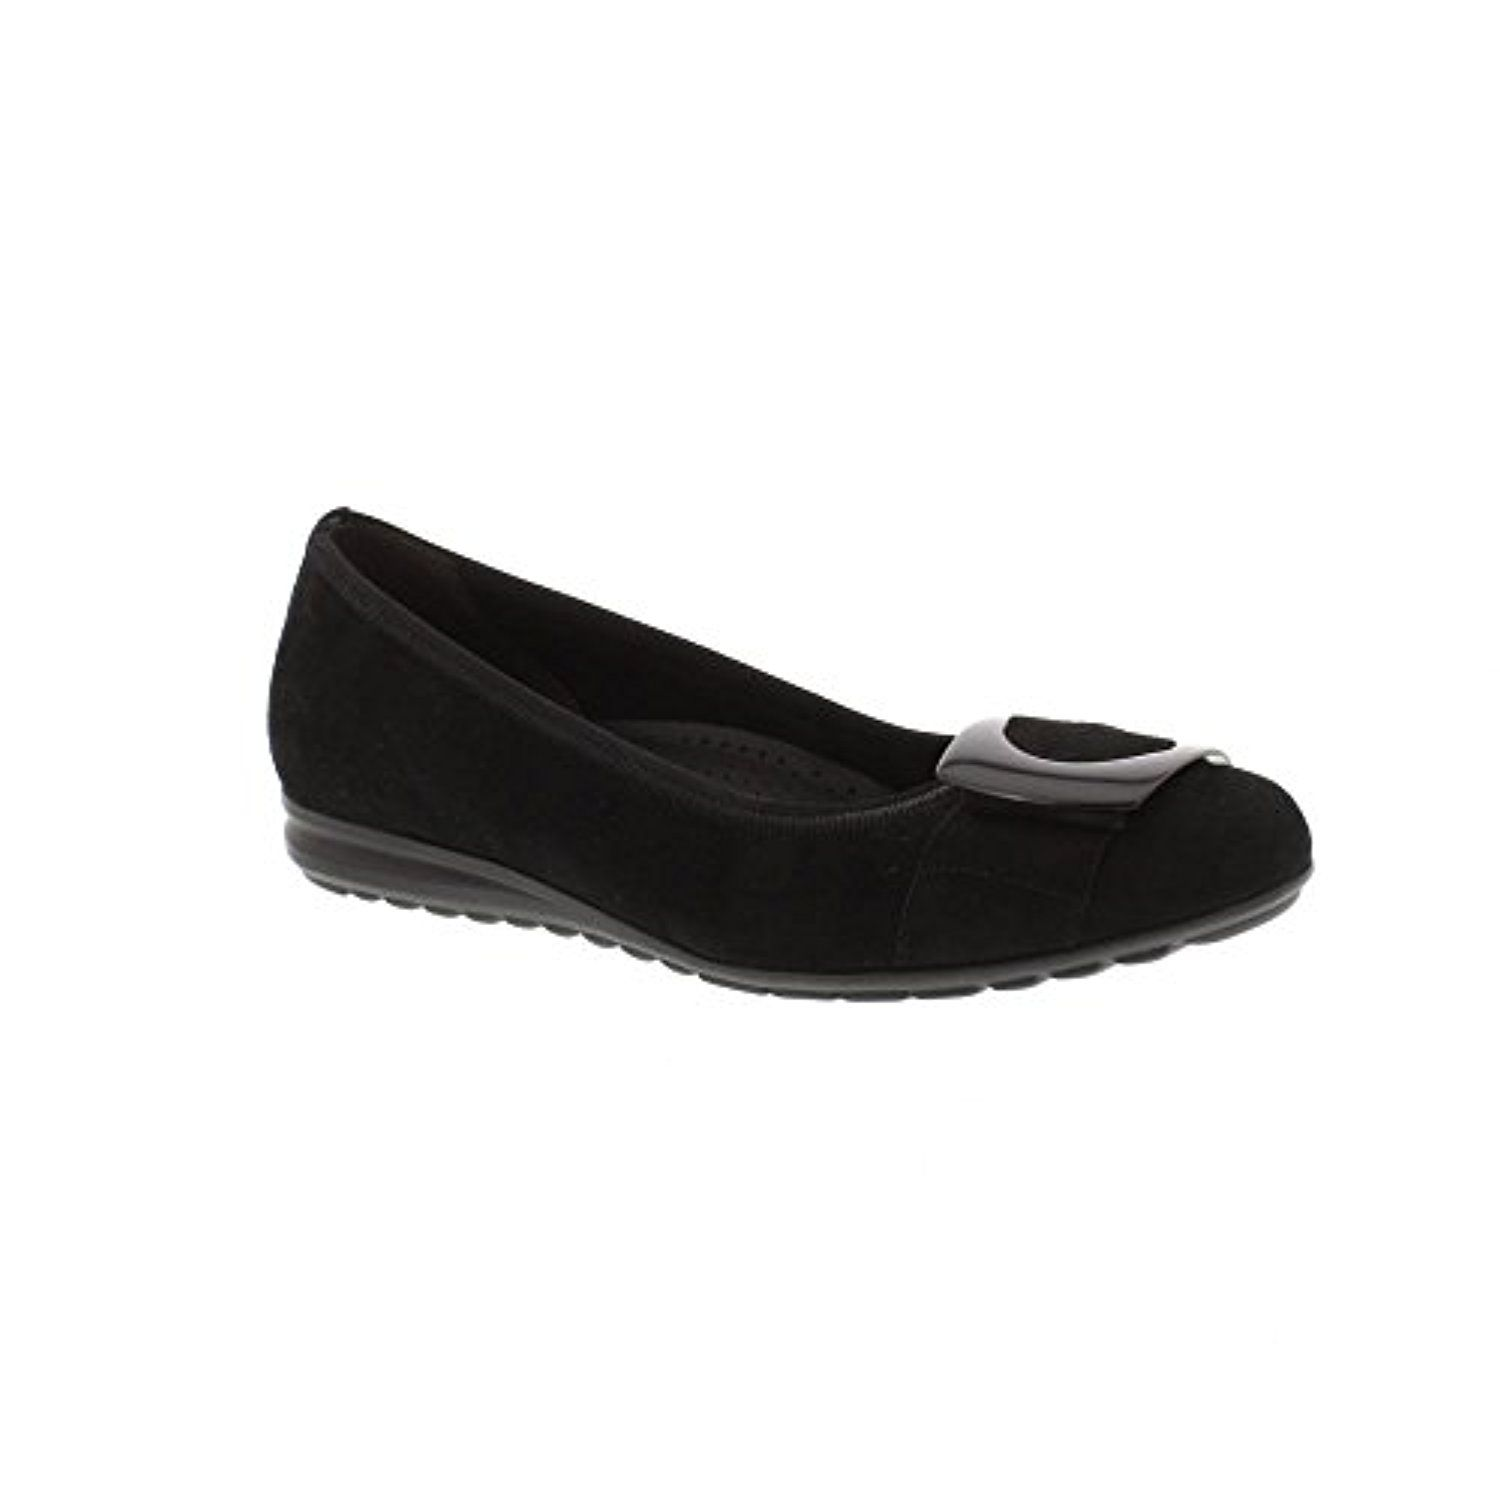 Vendredi Damen Ballerines Gabor